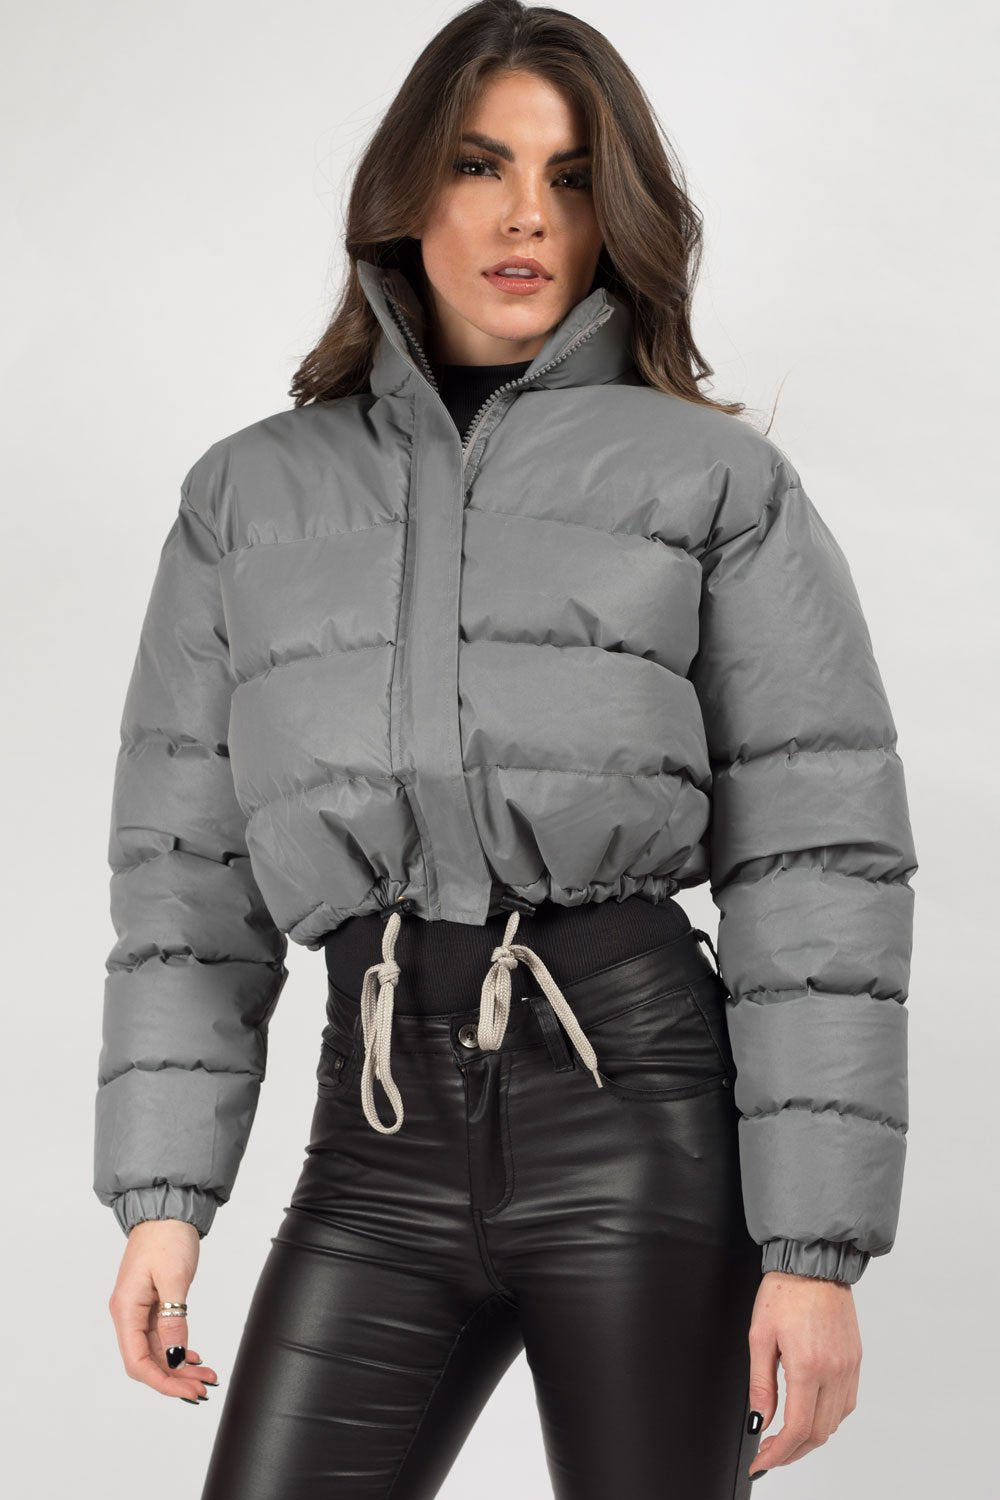 grey reflective puffer jacket womens